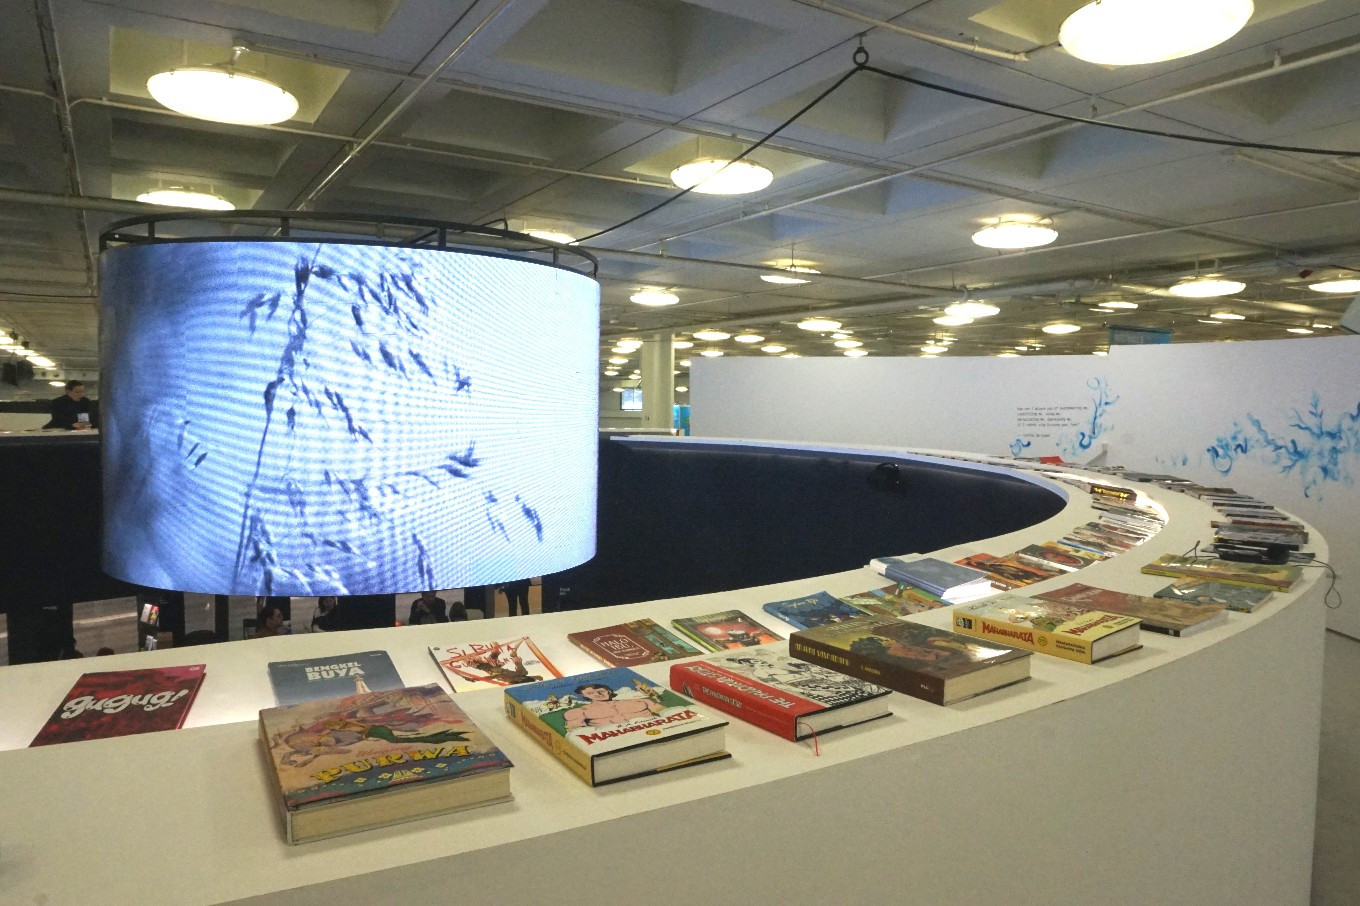 23 Indonesian titles sold, interest expressed in 408 more at London Book Fair